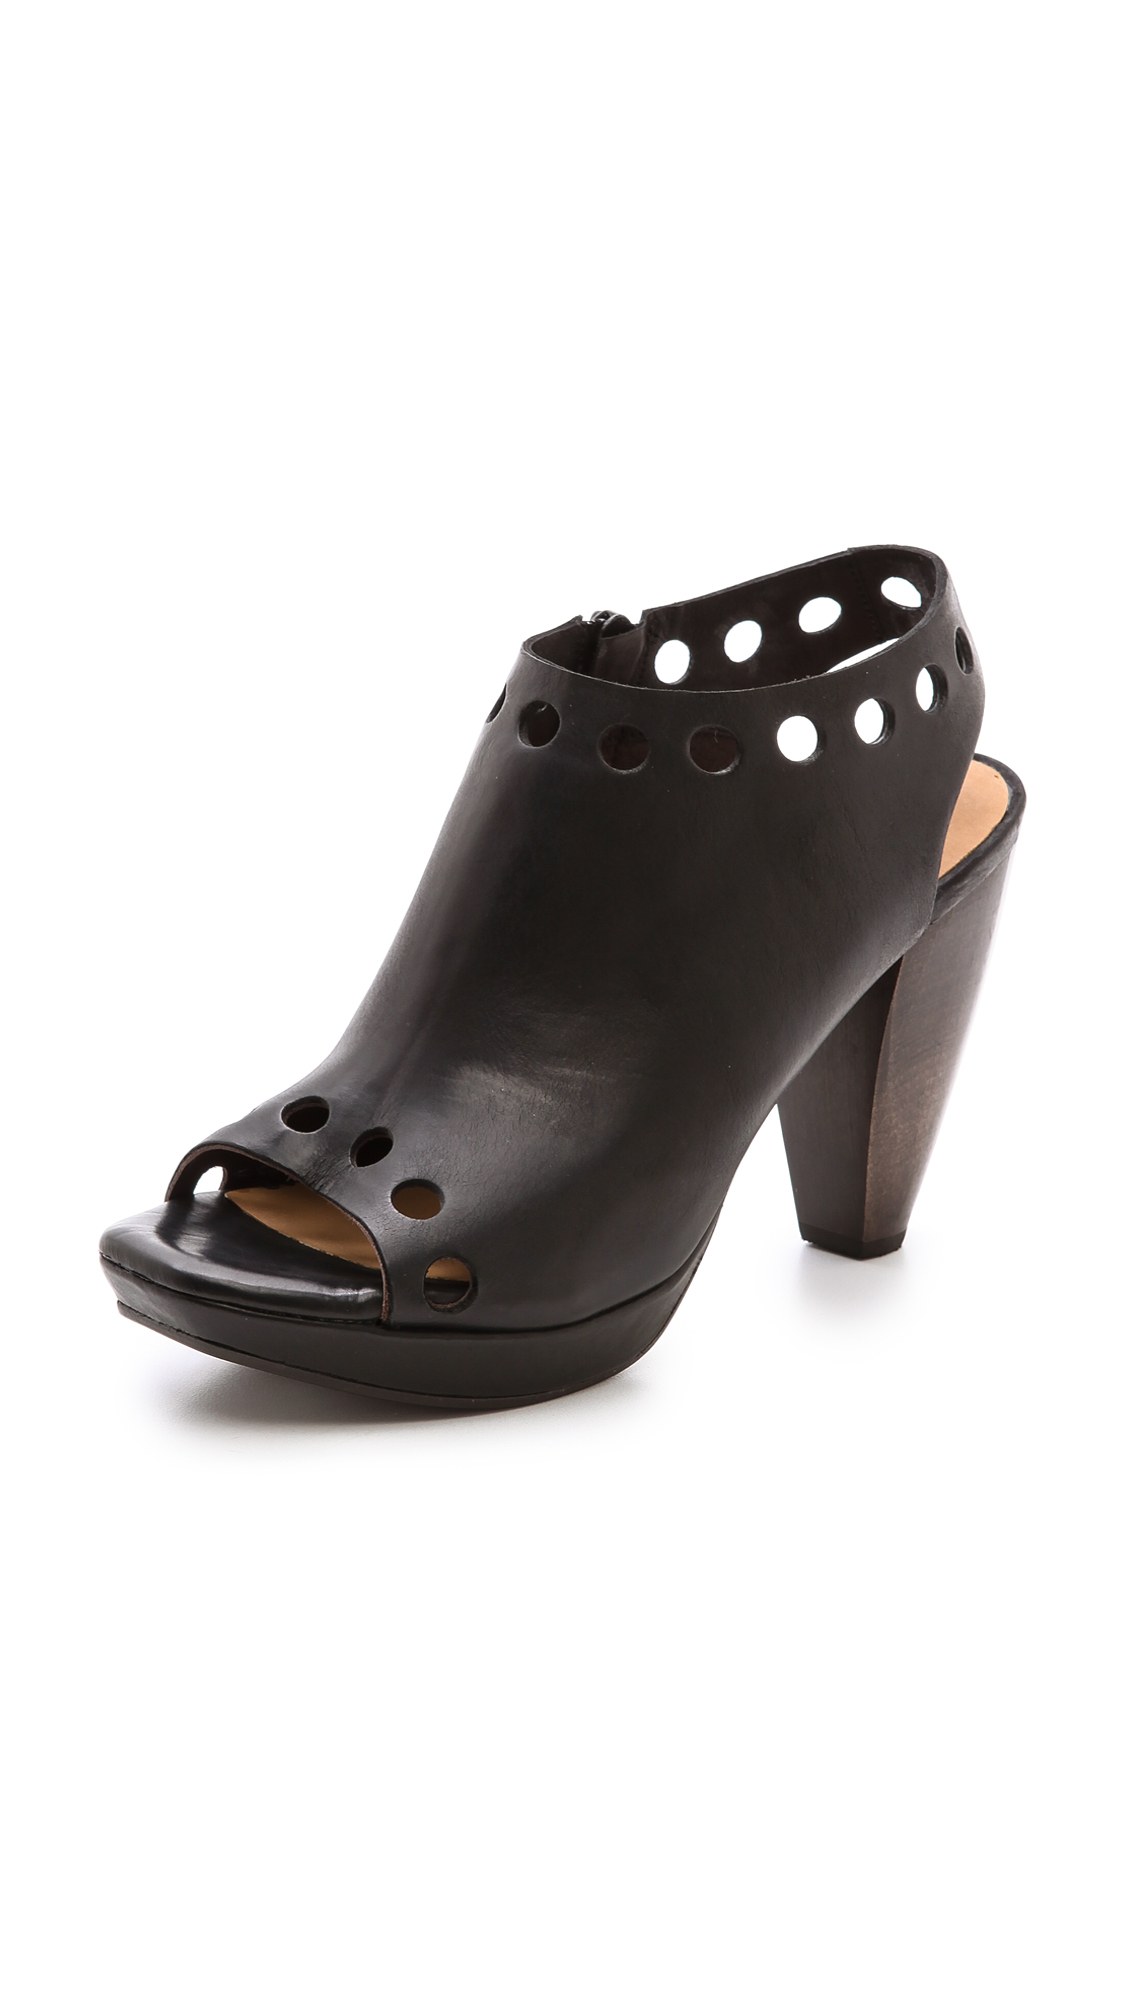 coclico-shoes-black-fisco-perf-slingback-booties-blacktancio-product-1